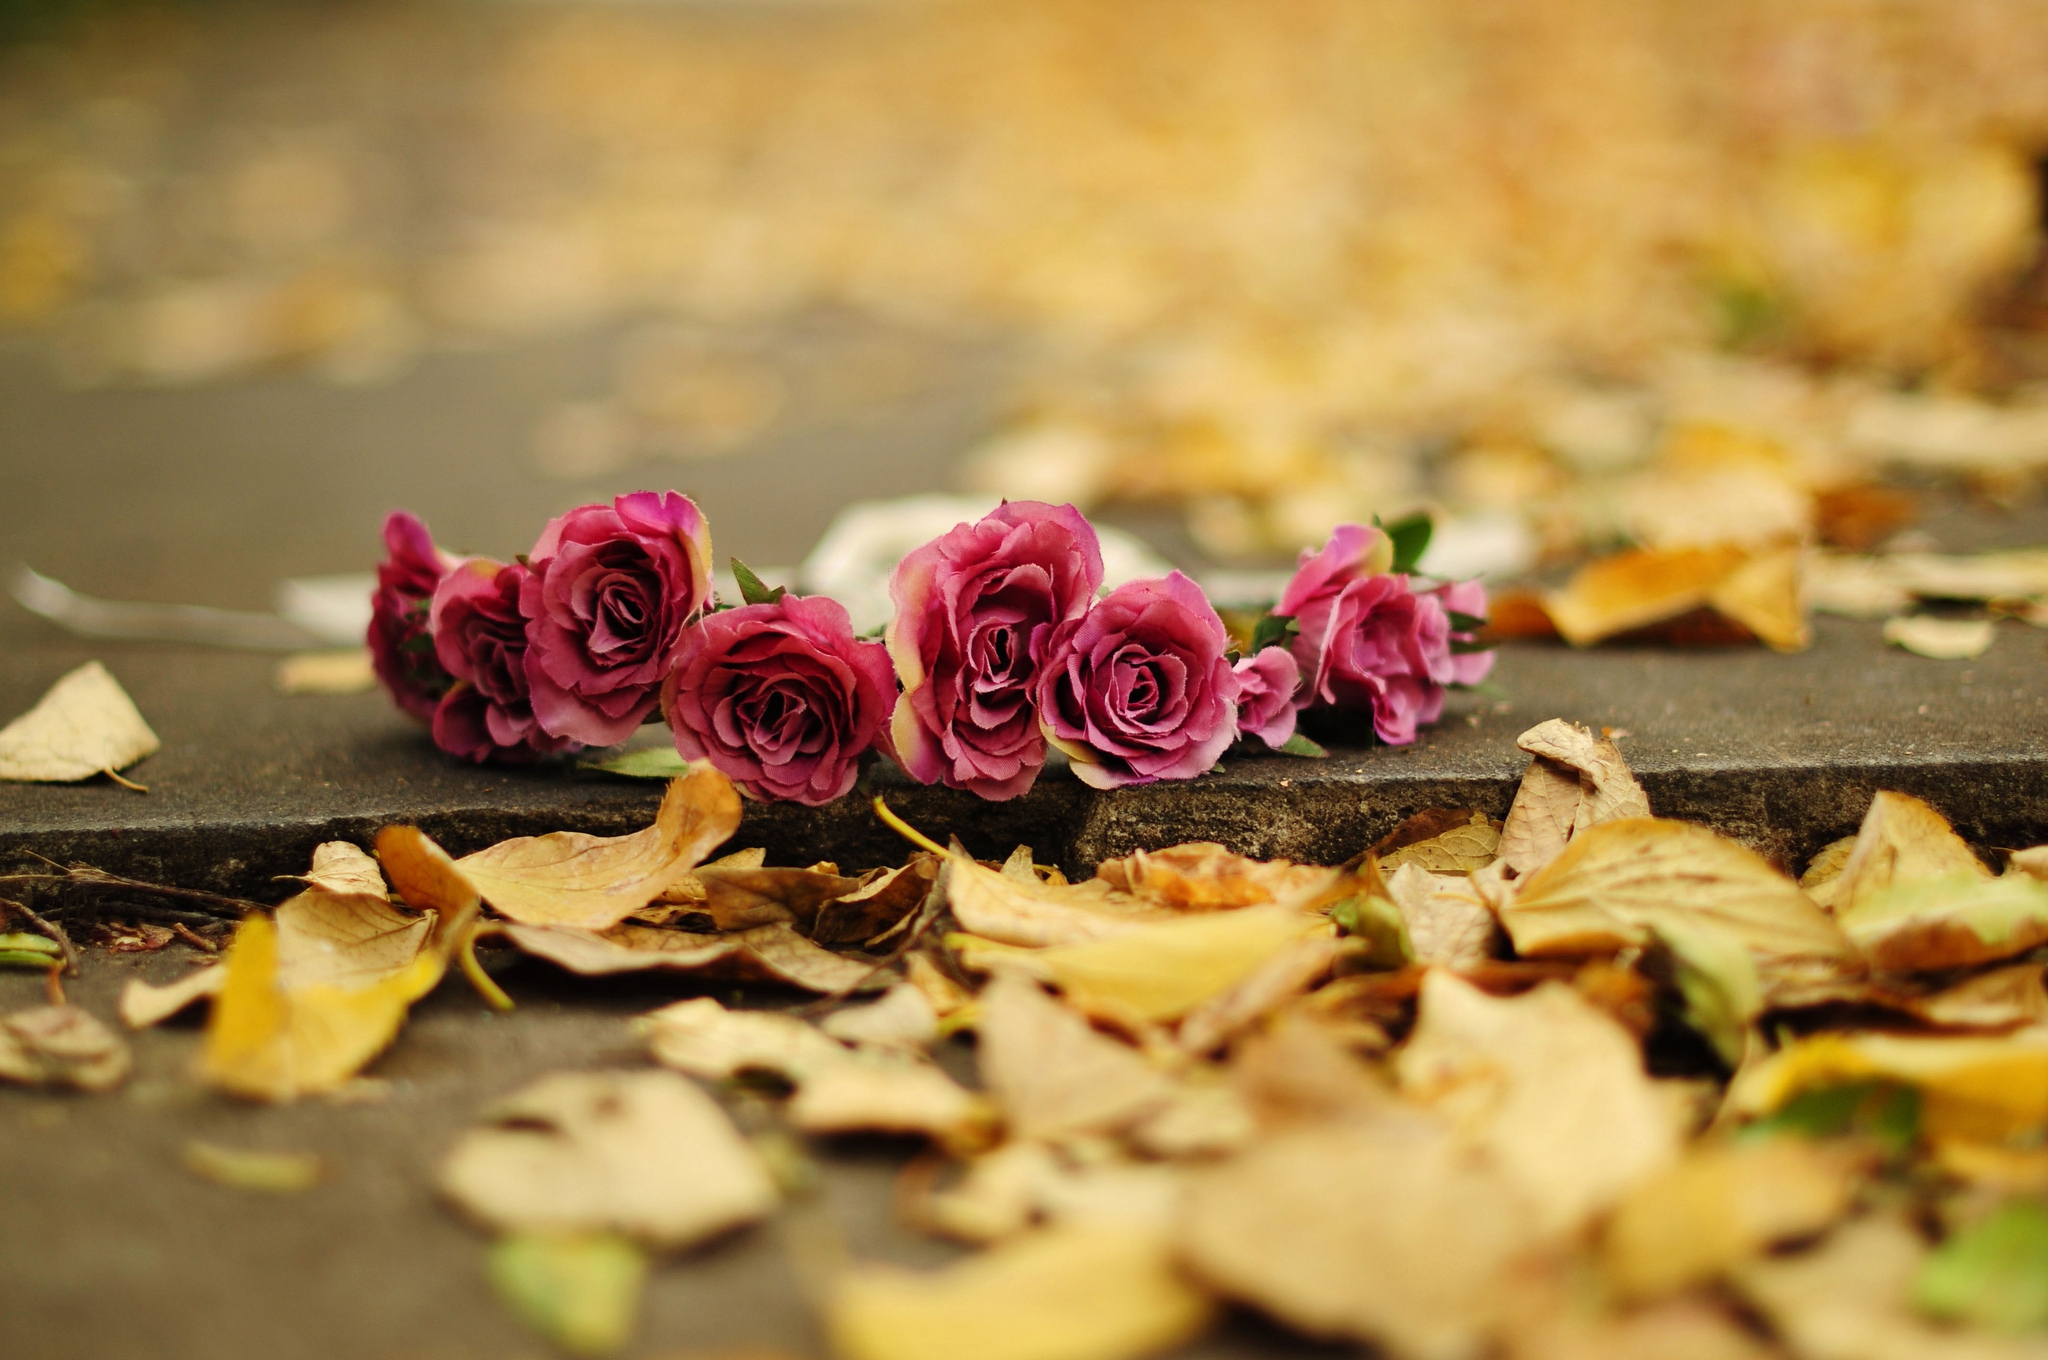 autumn flower wallpapers images photos pictures backgrounds